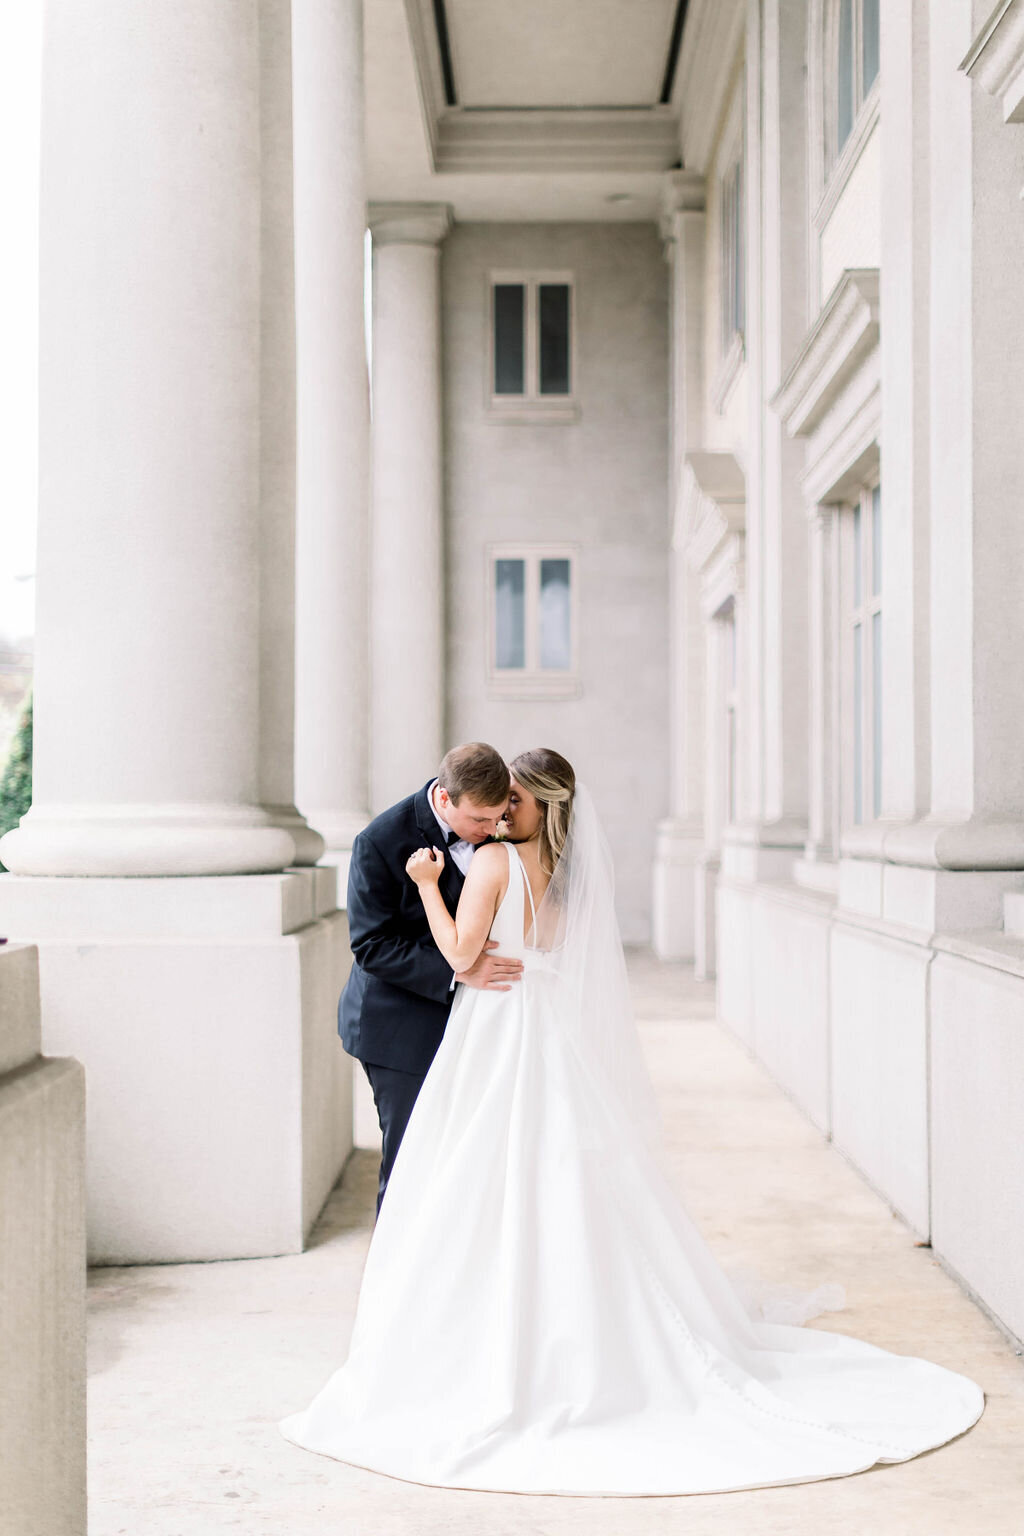 Light and Airy Wedding Photographer, Paige Michelle Photography captures bride and groom at wedding venue in Bowling Green , KY